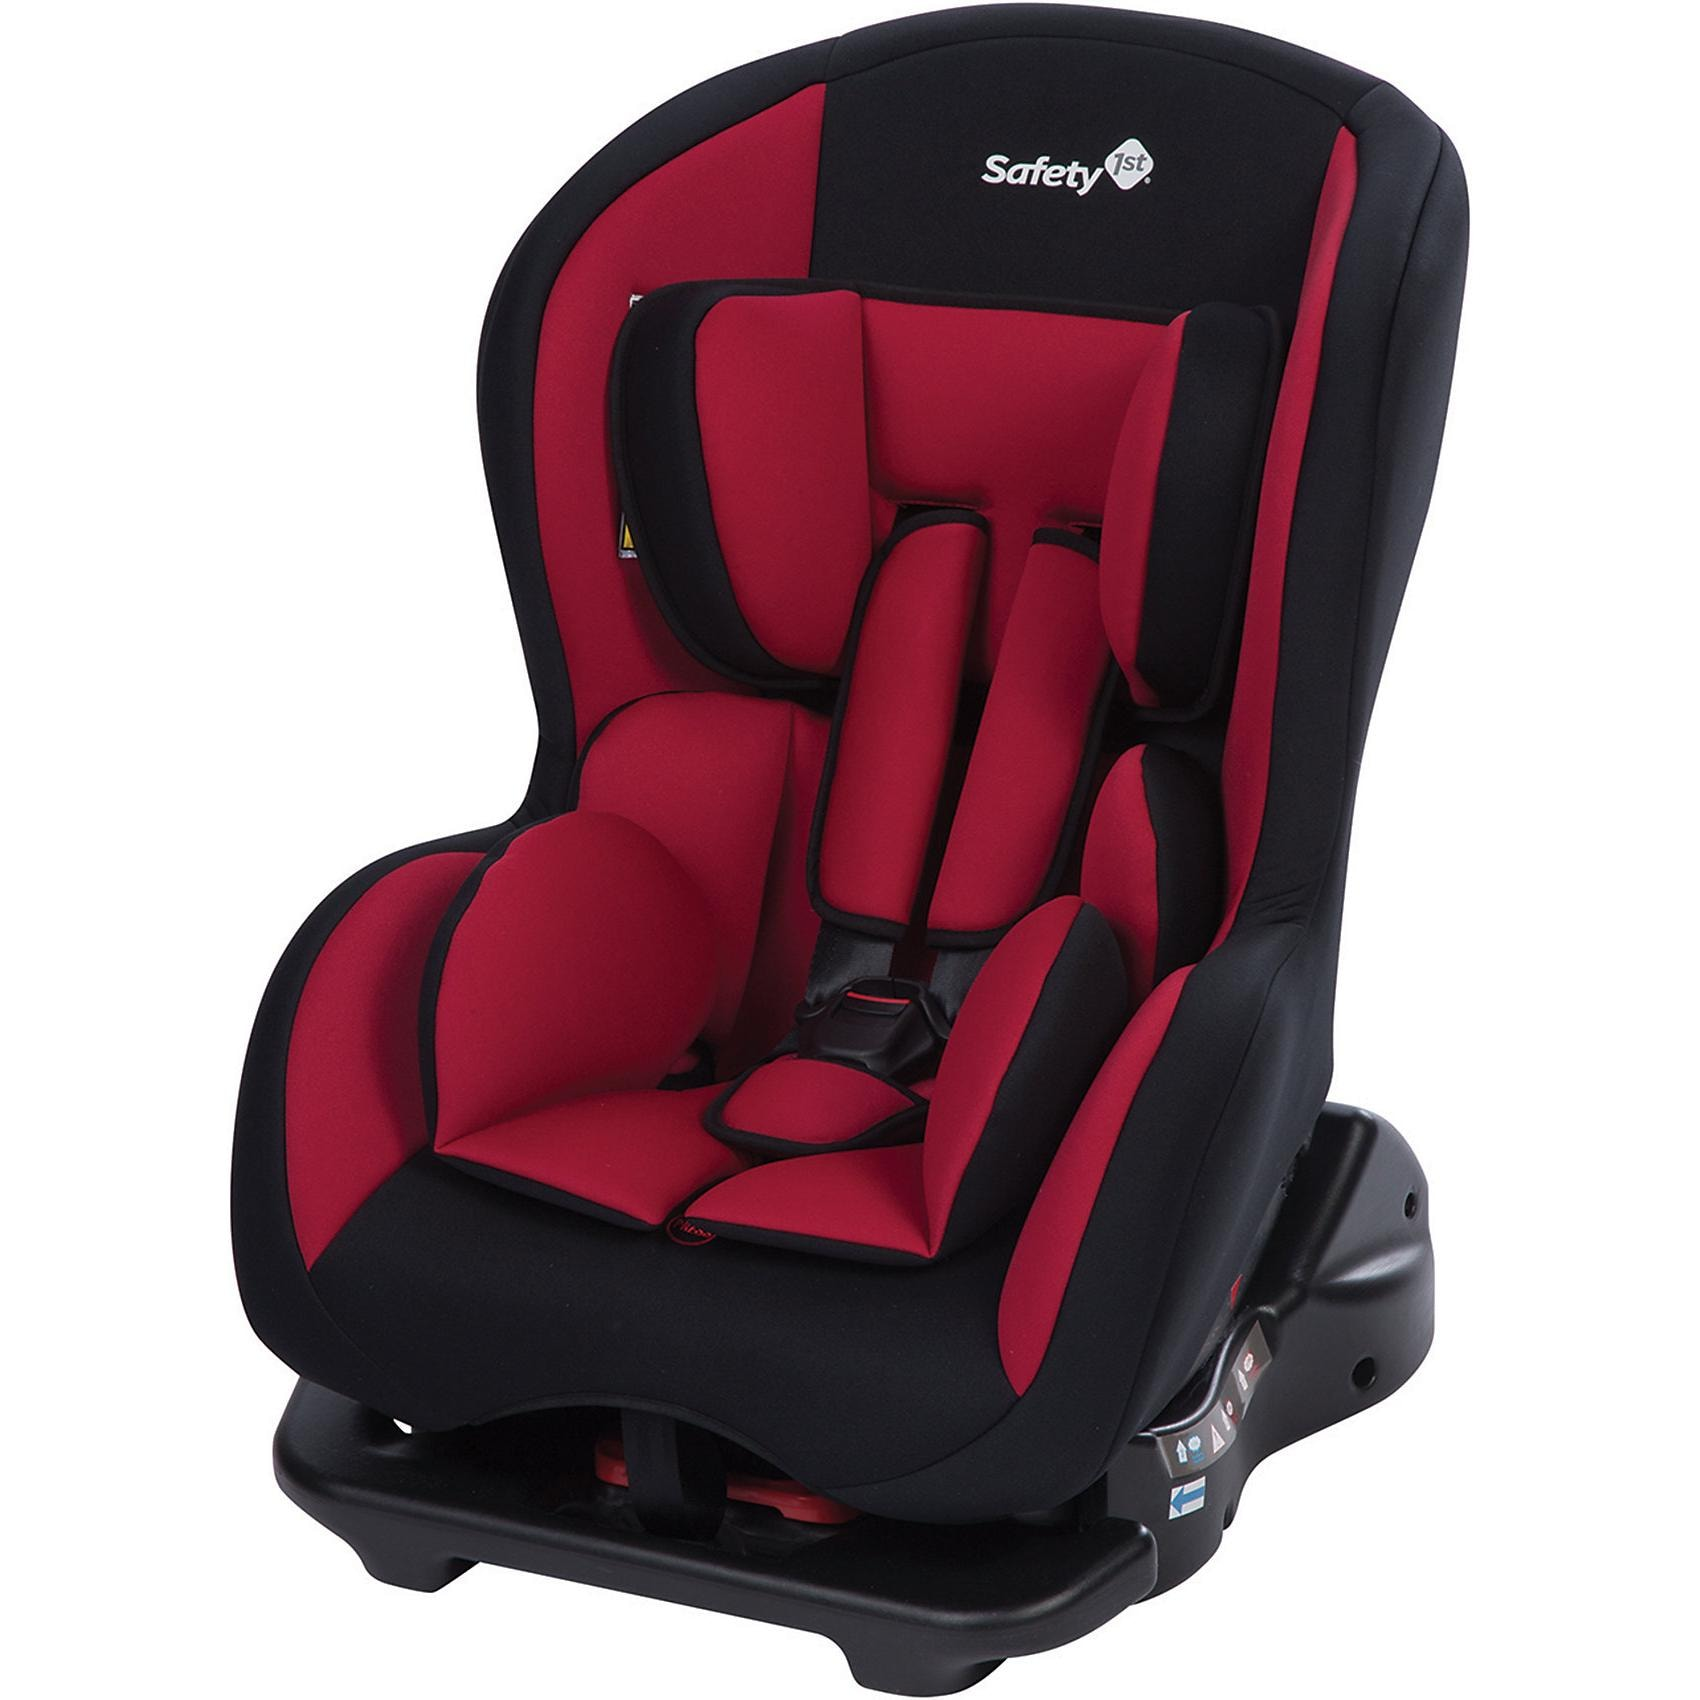 Safety 1st Auto-Kindersitz Sweet Safe Full Red 2018